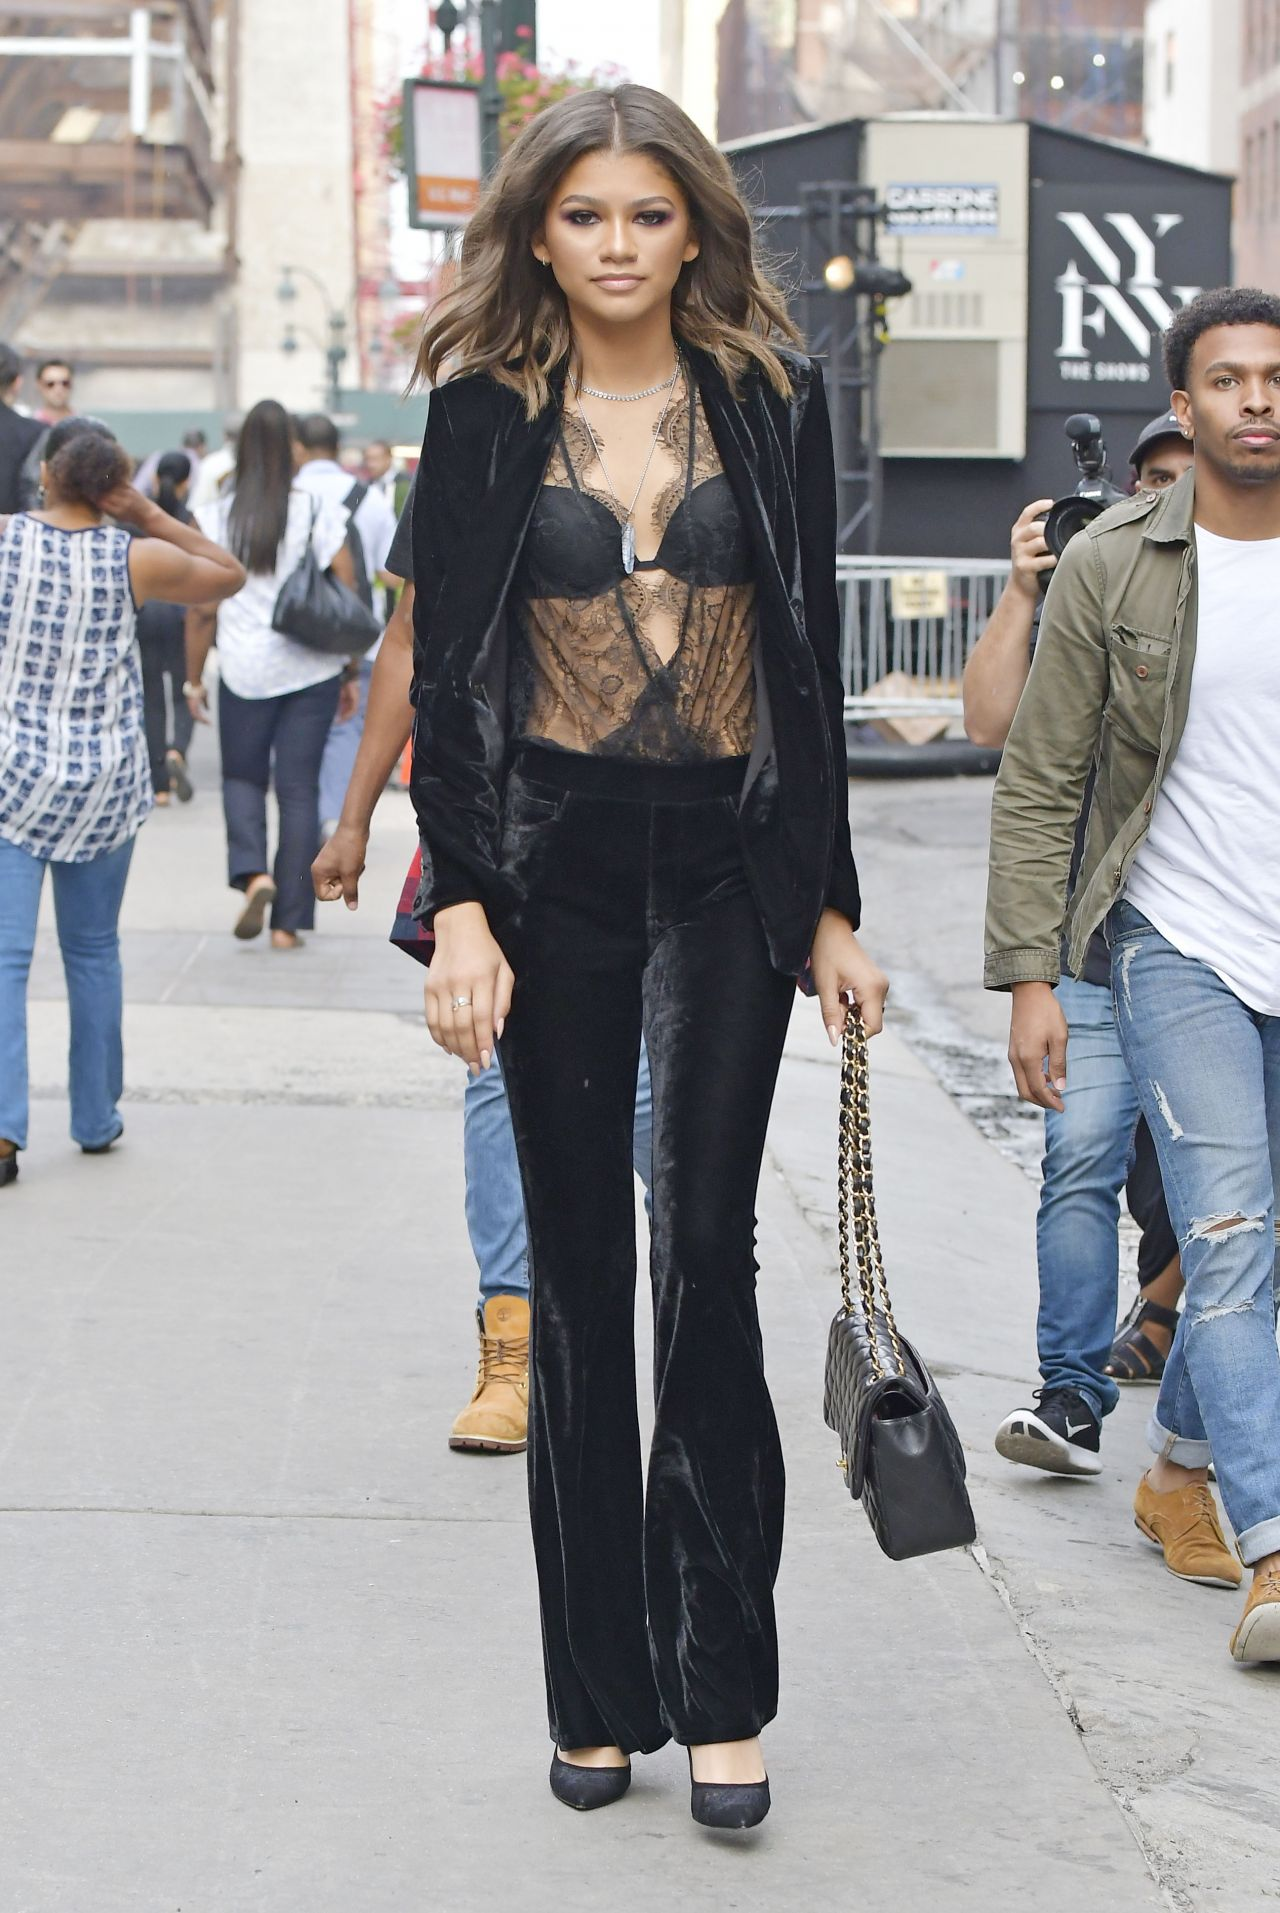 Zendaya Coleman Style Out In Nyc 9 9 2016 Filmstar Space